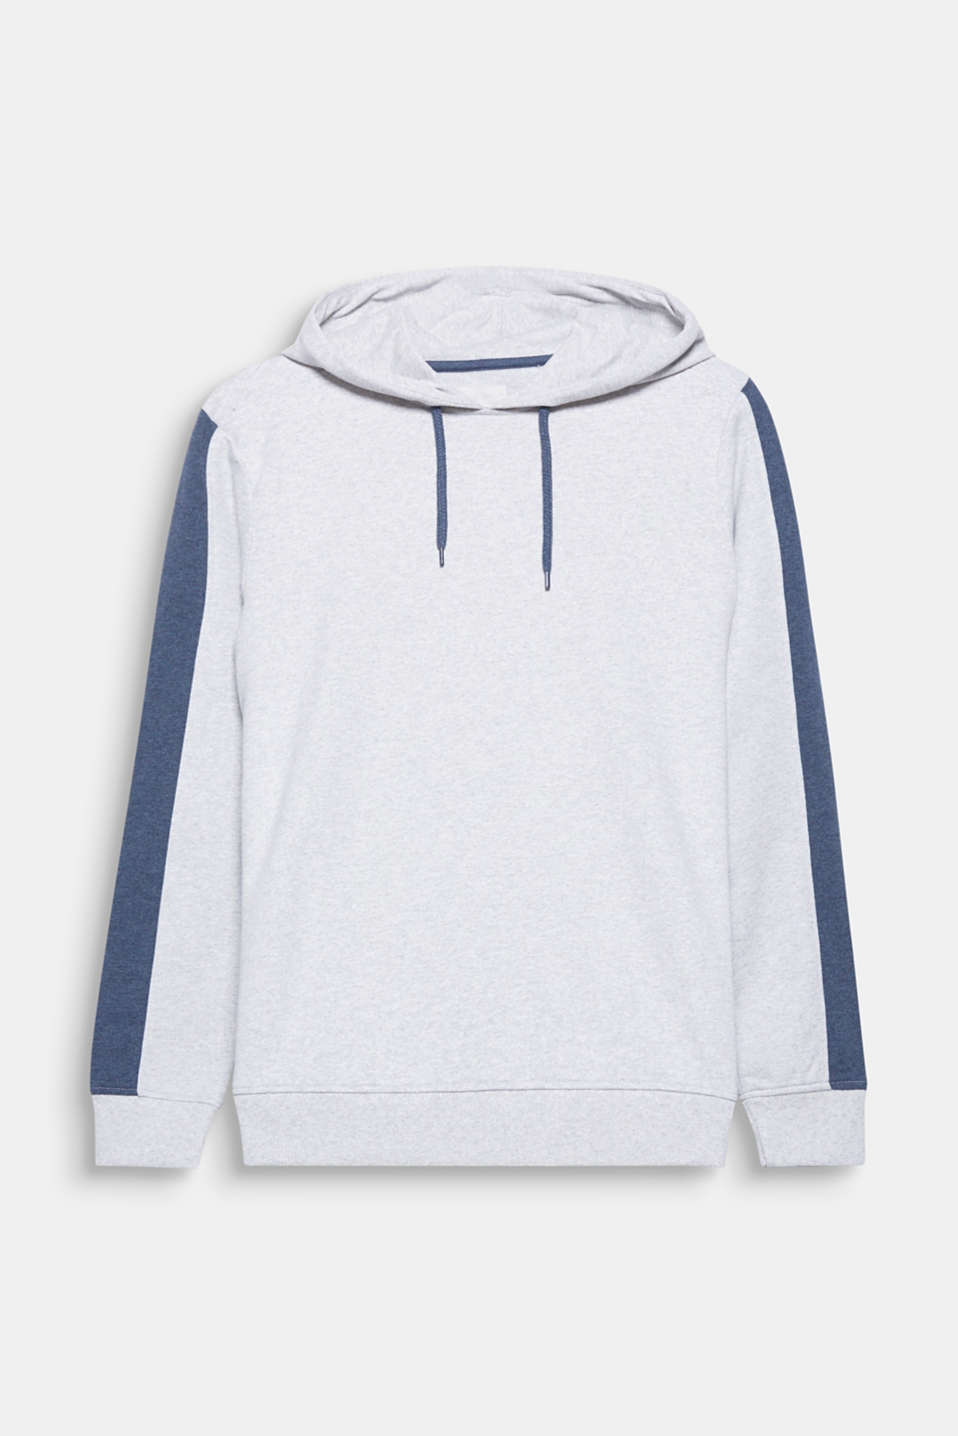 Distinctive block stripes give this hoodie a sporty look.